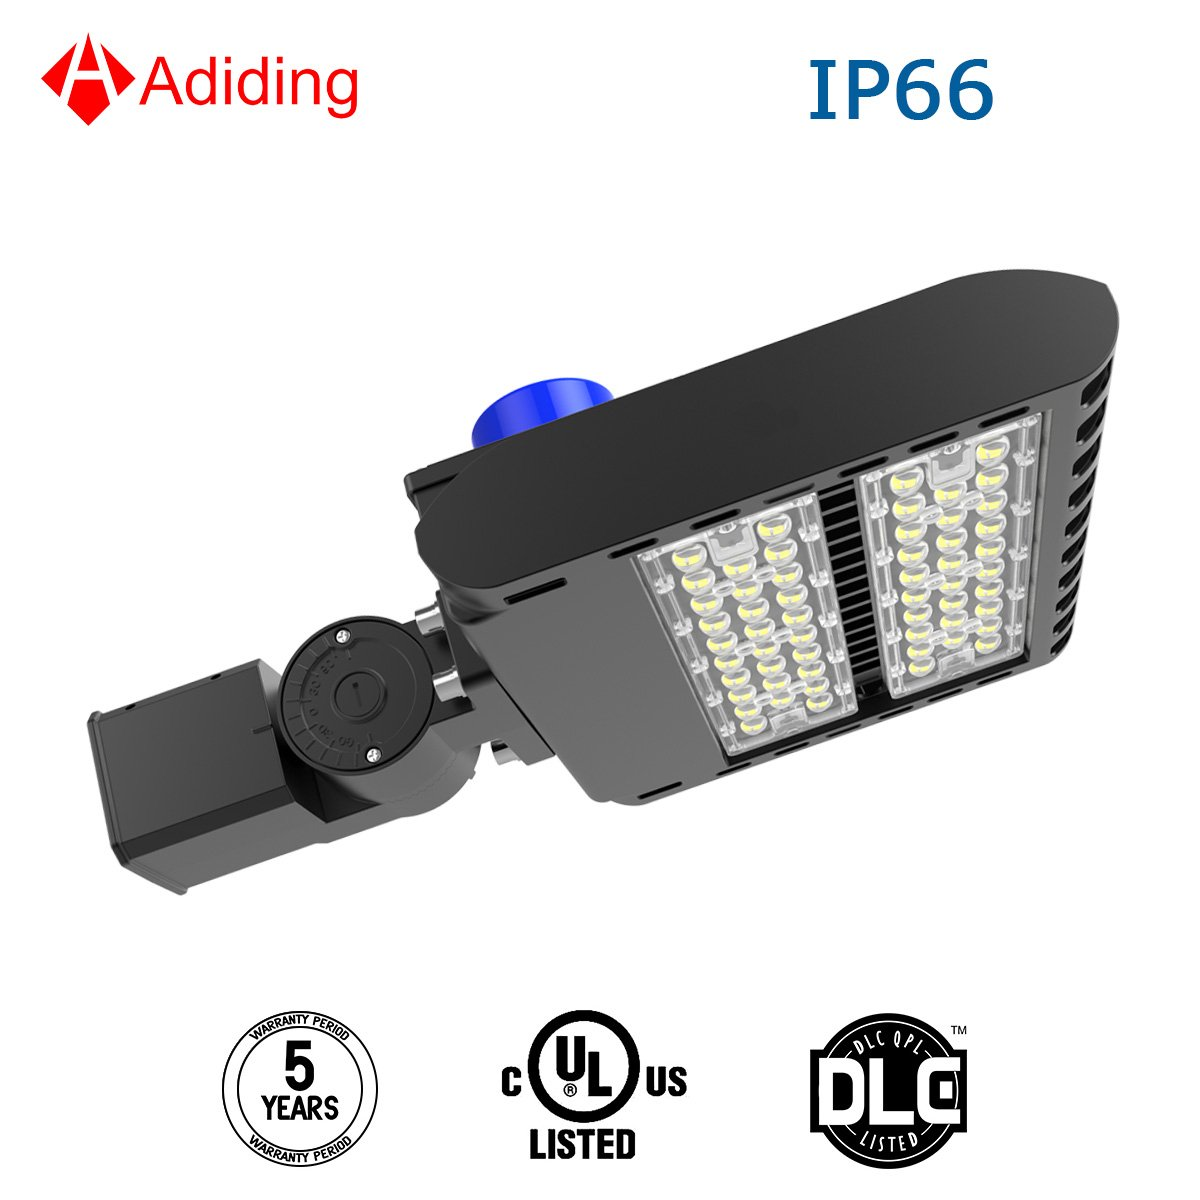 Led Parking Lot Light 100w Street Area Lumileds Smd 3030 Photocell Sensor Further Fluorescent Fixtures On Wiring Diagram 130 Lm W Daylight 5700k Bright White With Sensorshorting Circuit Cap